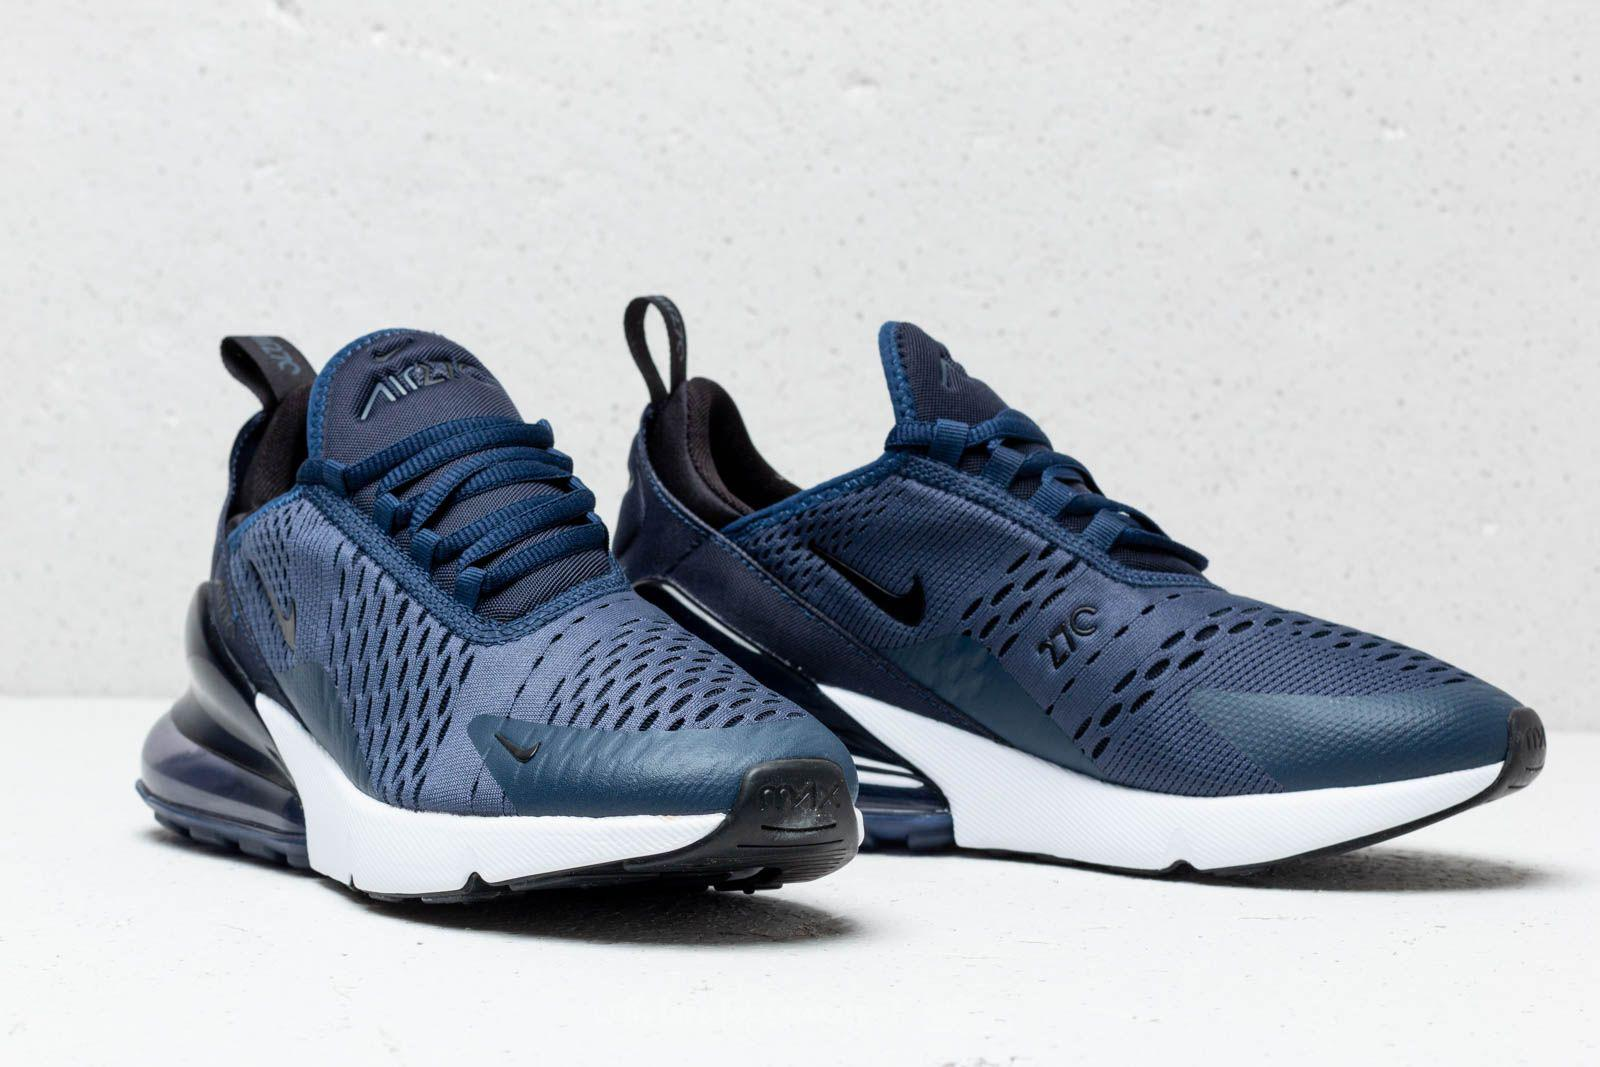 Lyst - Nike Air Max 270 (gs) Midnight Navy  Black-white in Blue 01558081f1